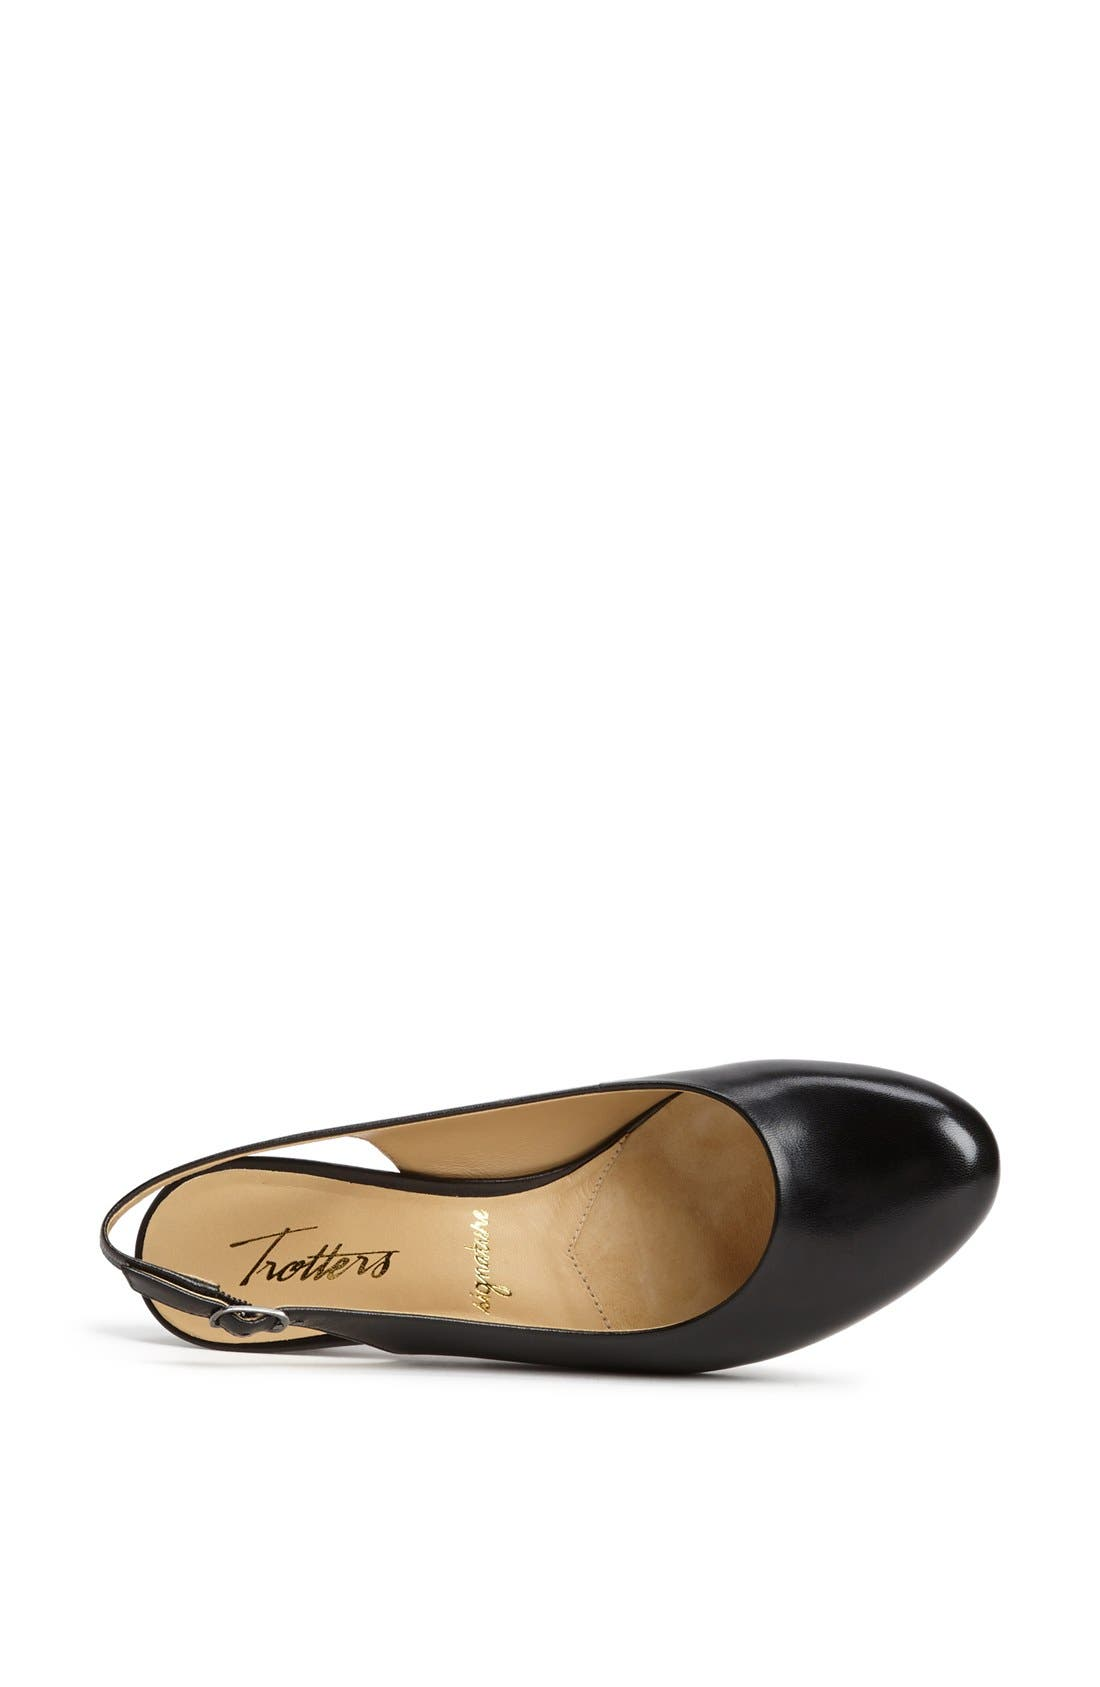 'Pella' Slingback Pump,                             Alternate thumbnail 4, color,                             001